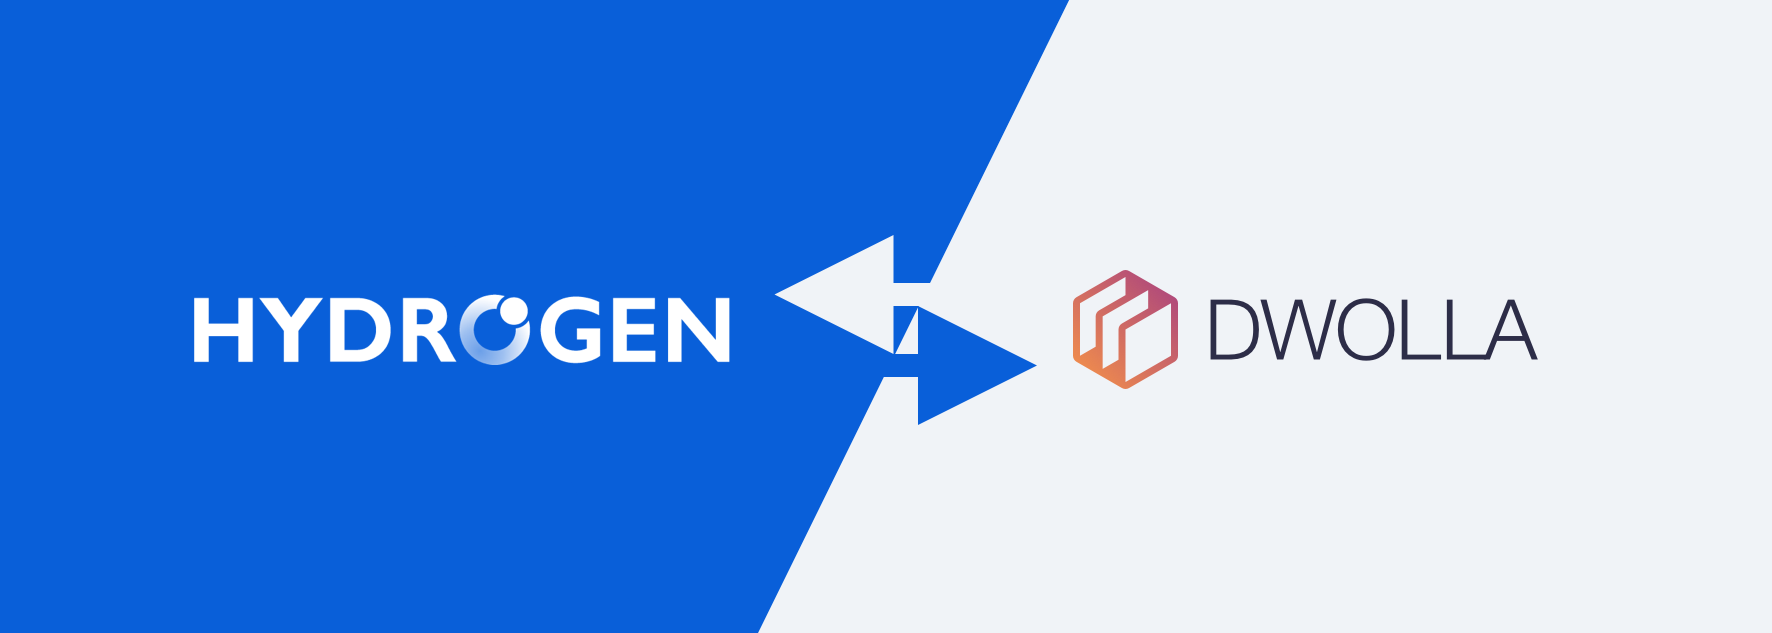 Dwolla Partners with Hydrogen to Fuel the Financial Revolution